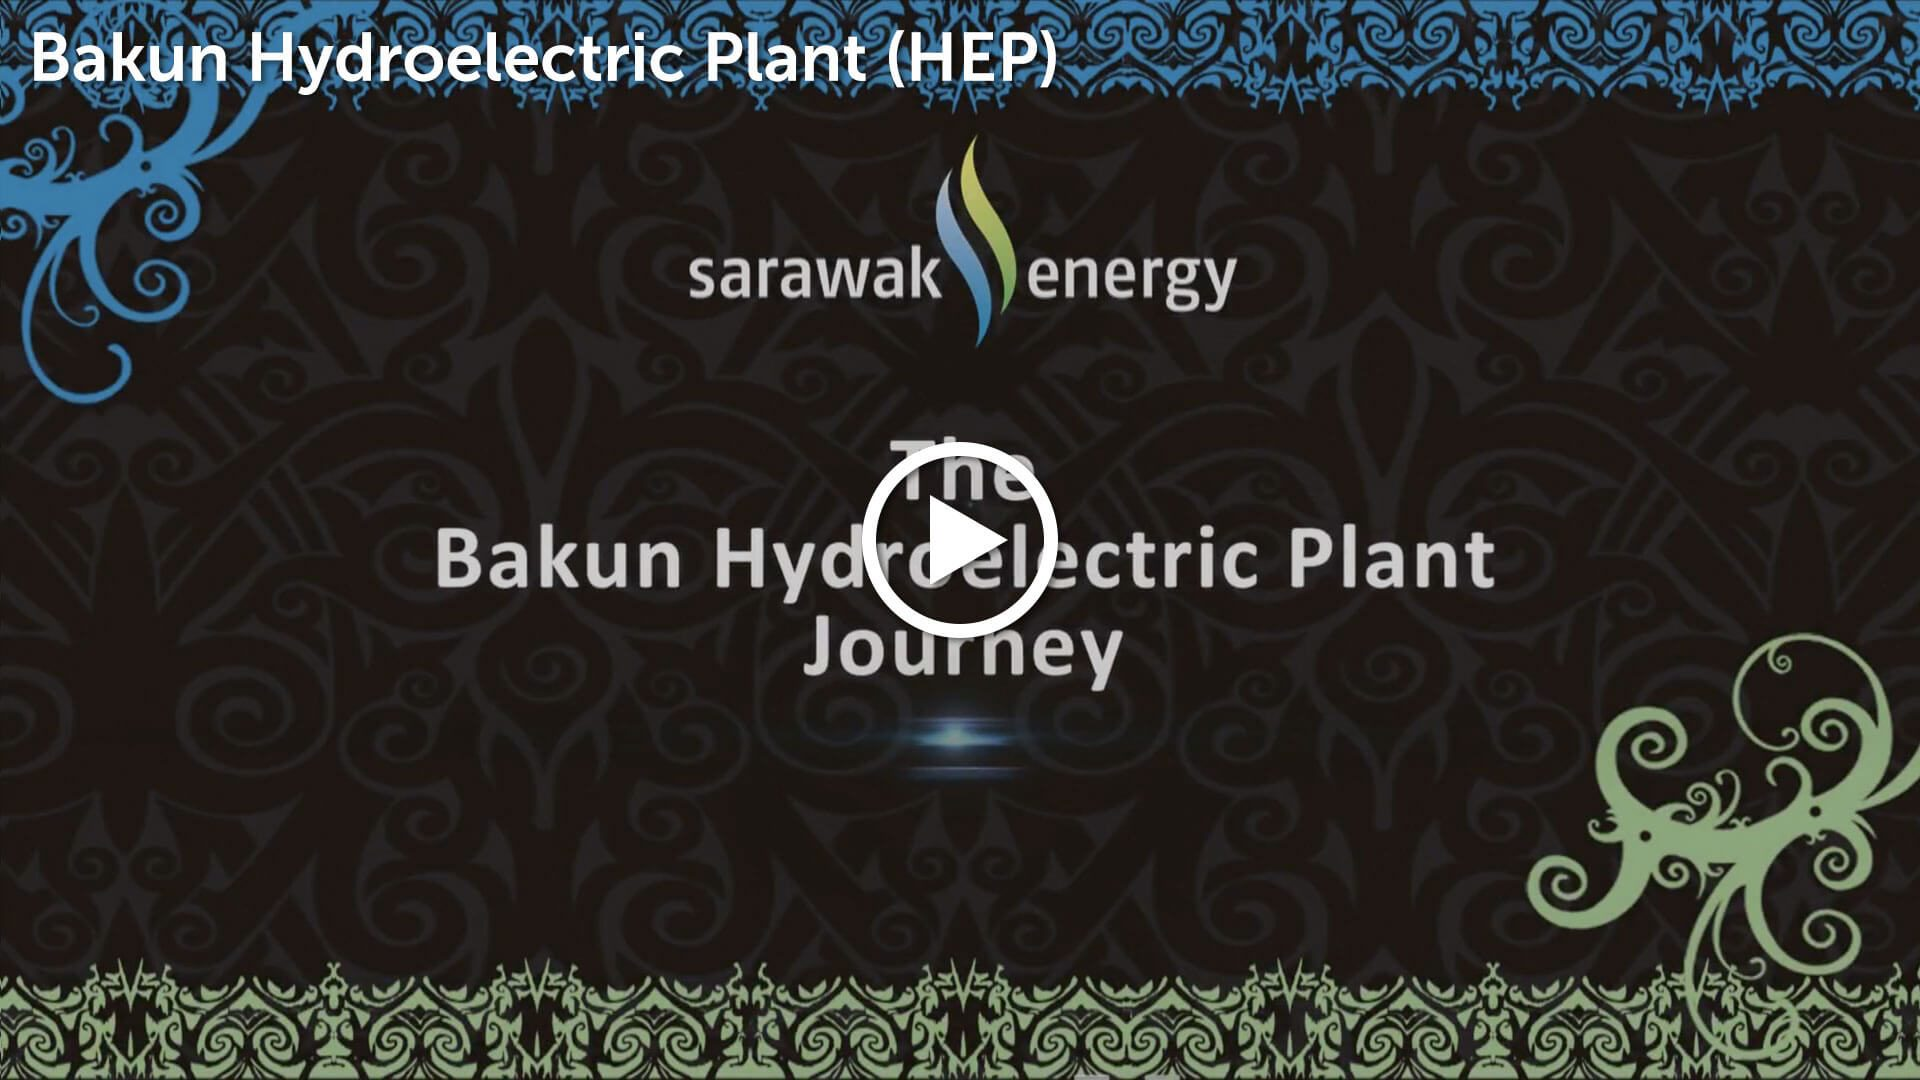 Bakun Hydroelectric Plant Video Thumbnail